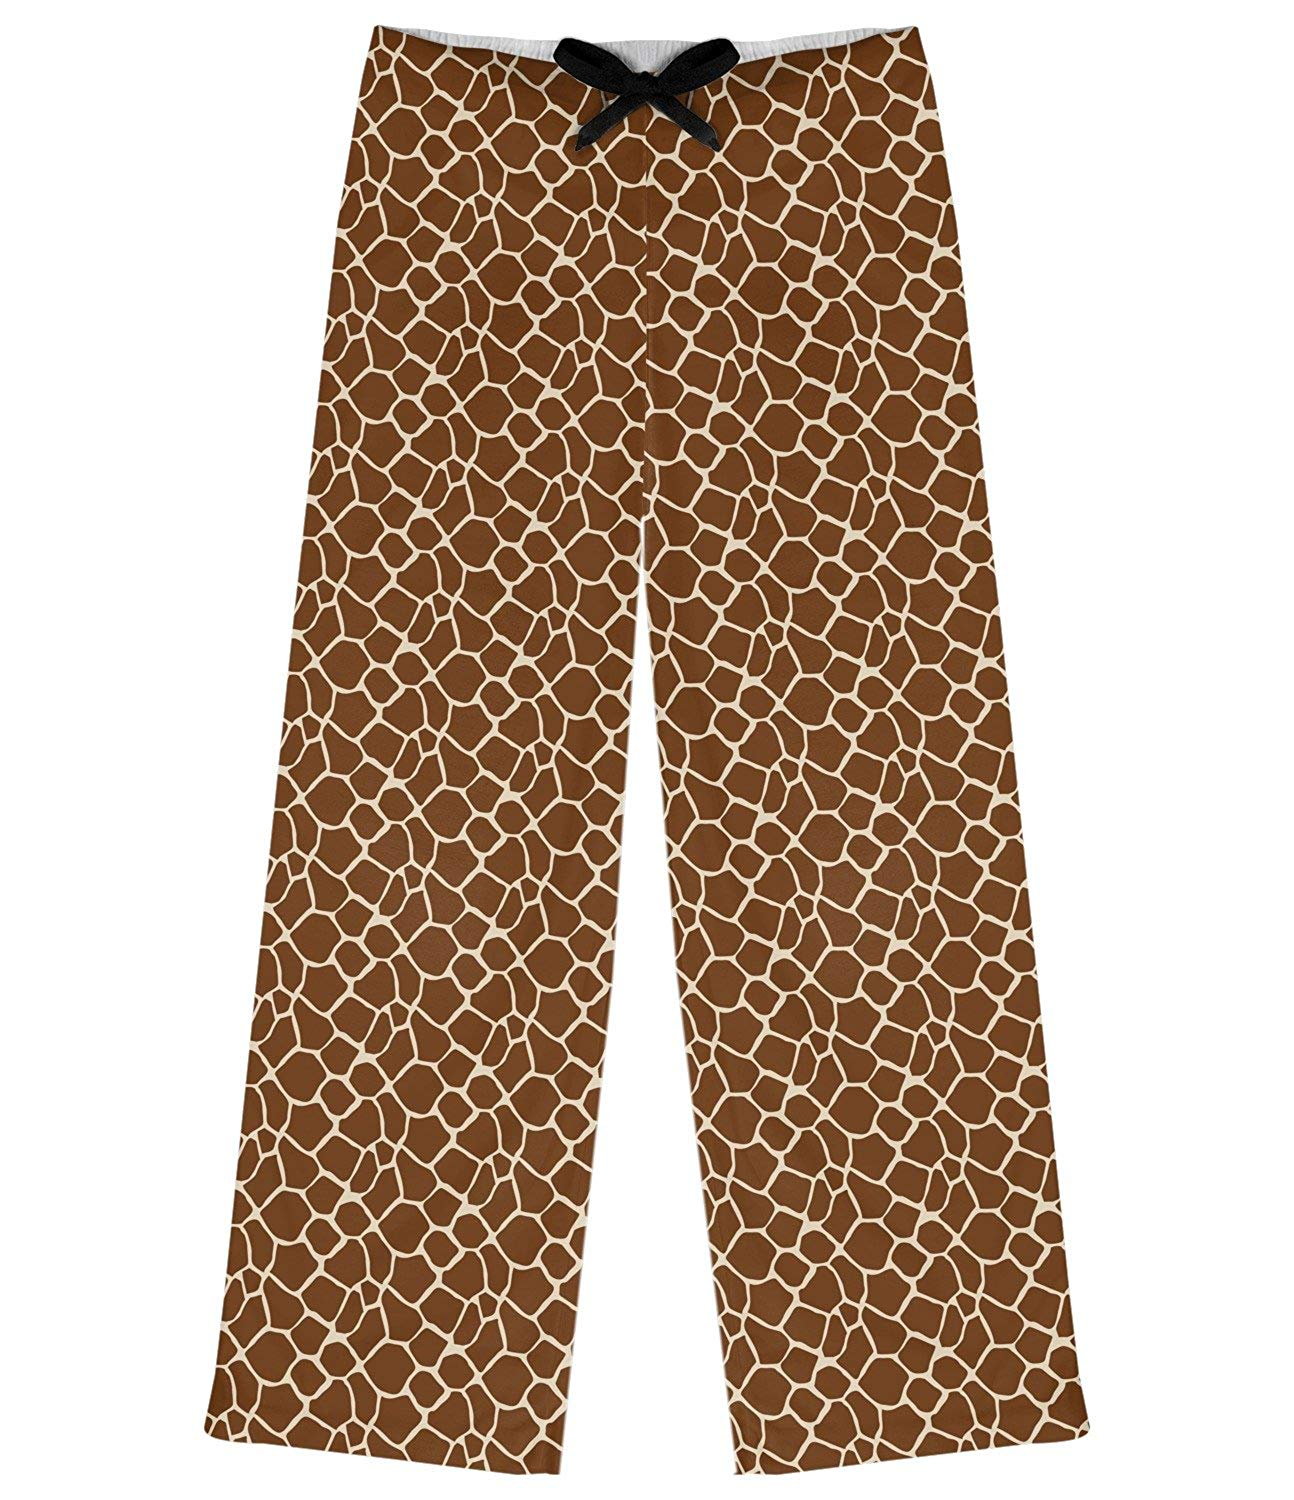 abd190f384 Get Quotations · RNK Shops Giraffe Print Womens Pajama Pants (Personalized)